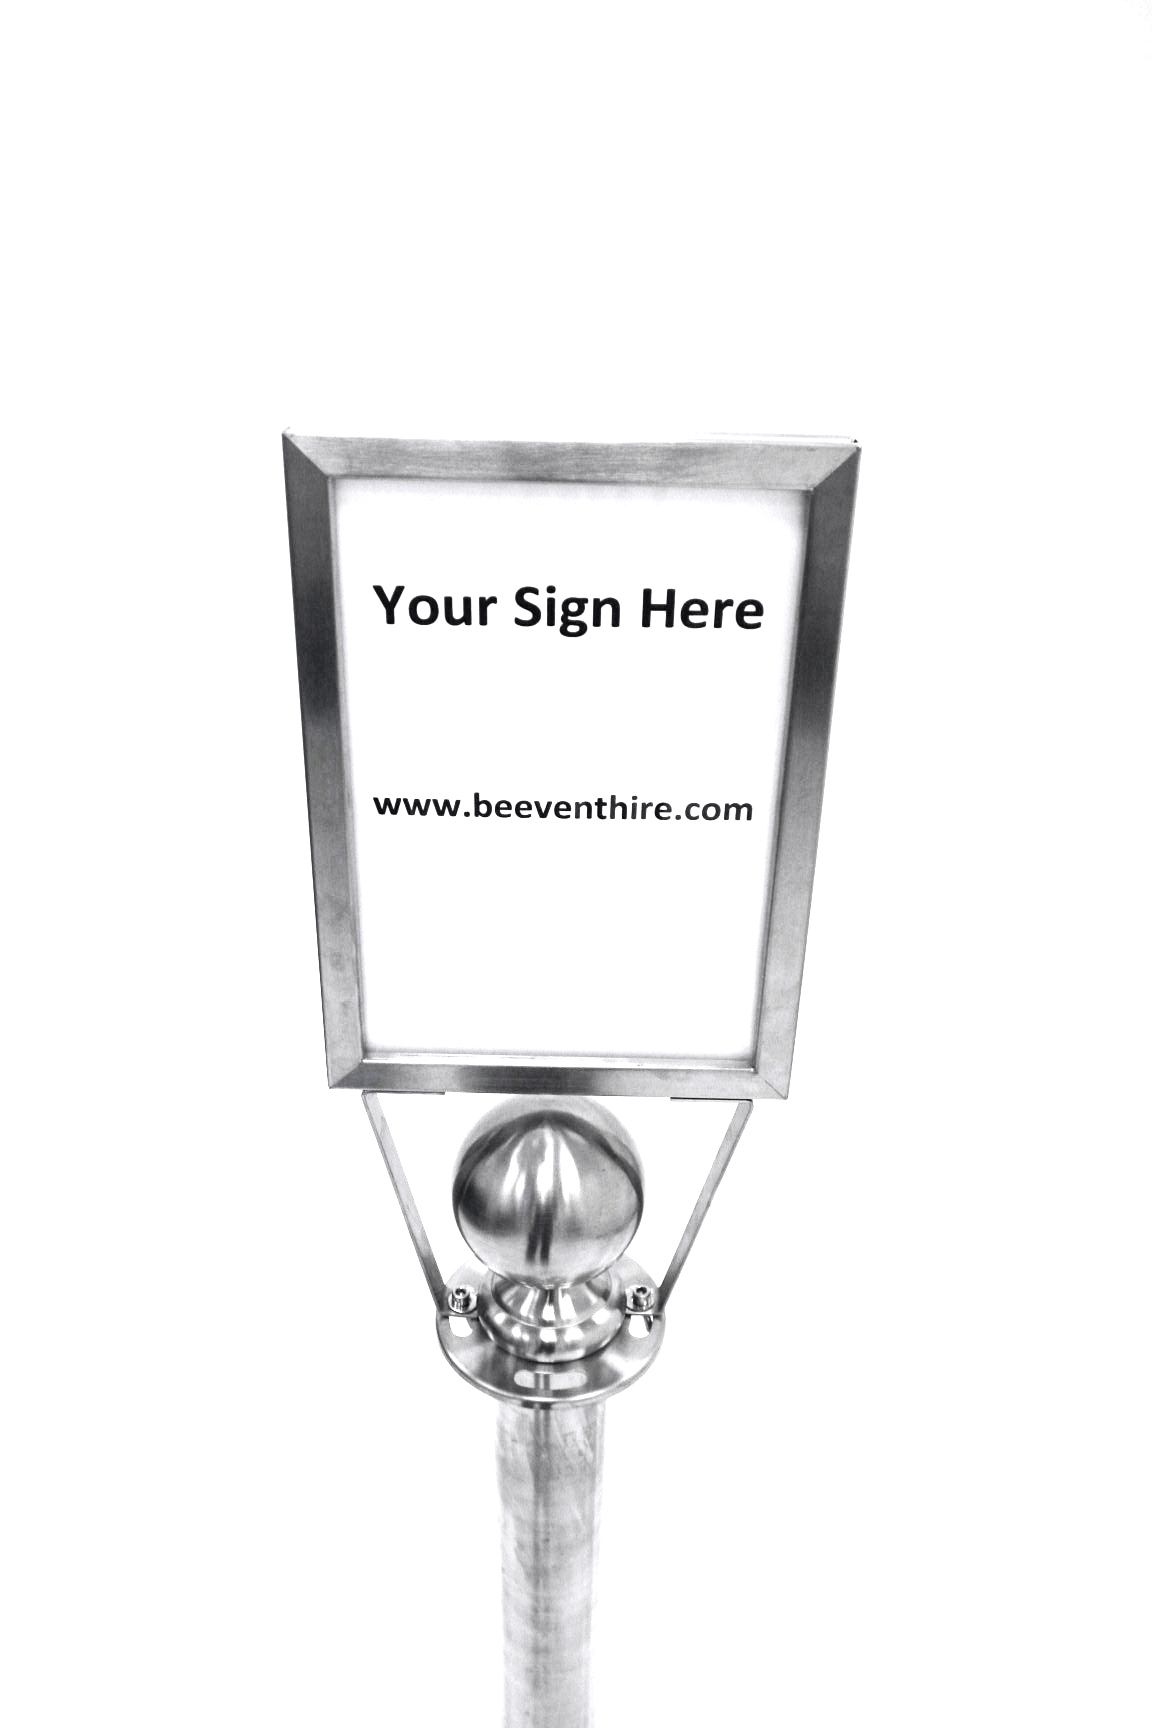 A4 Post Sign Holders for Hire - Fits Barrier Posts - BE Event Hire